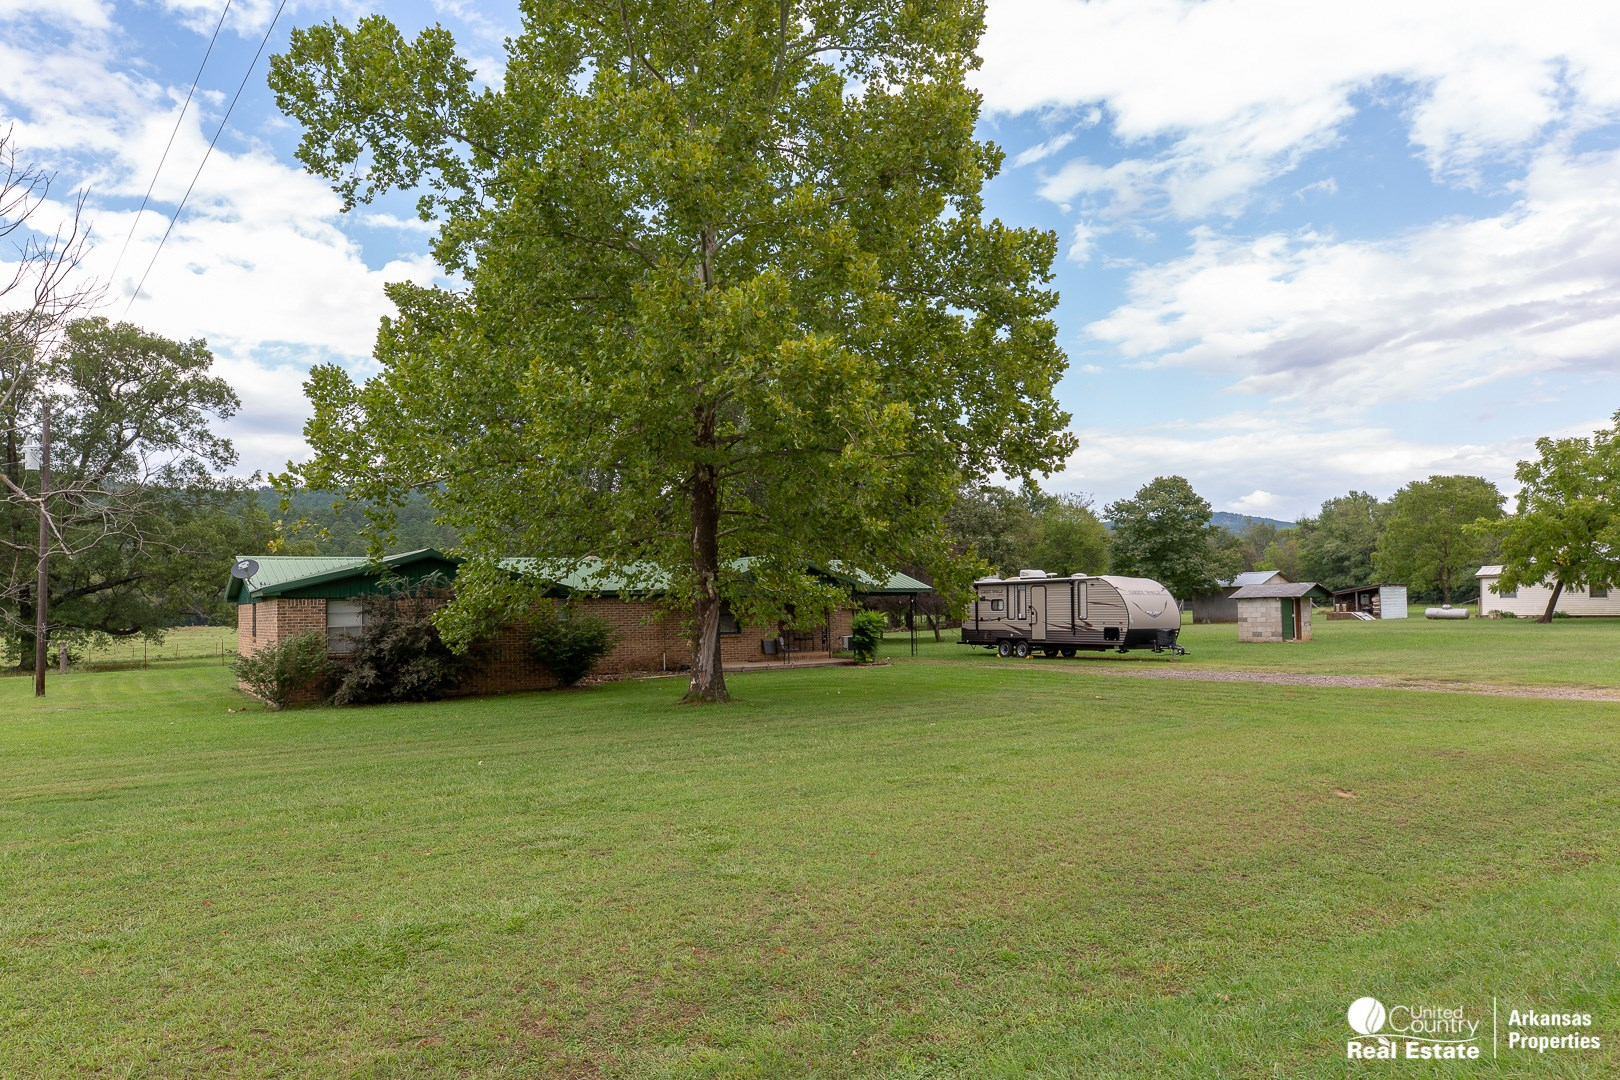 Home for Sale in Arkansas with small acreage